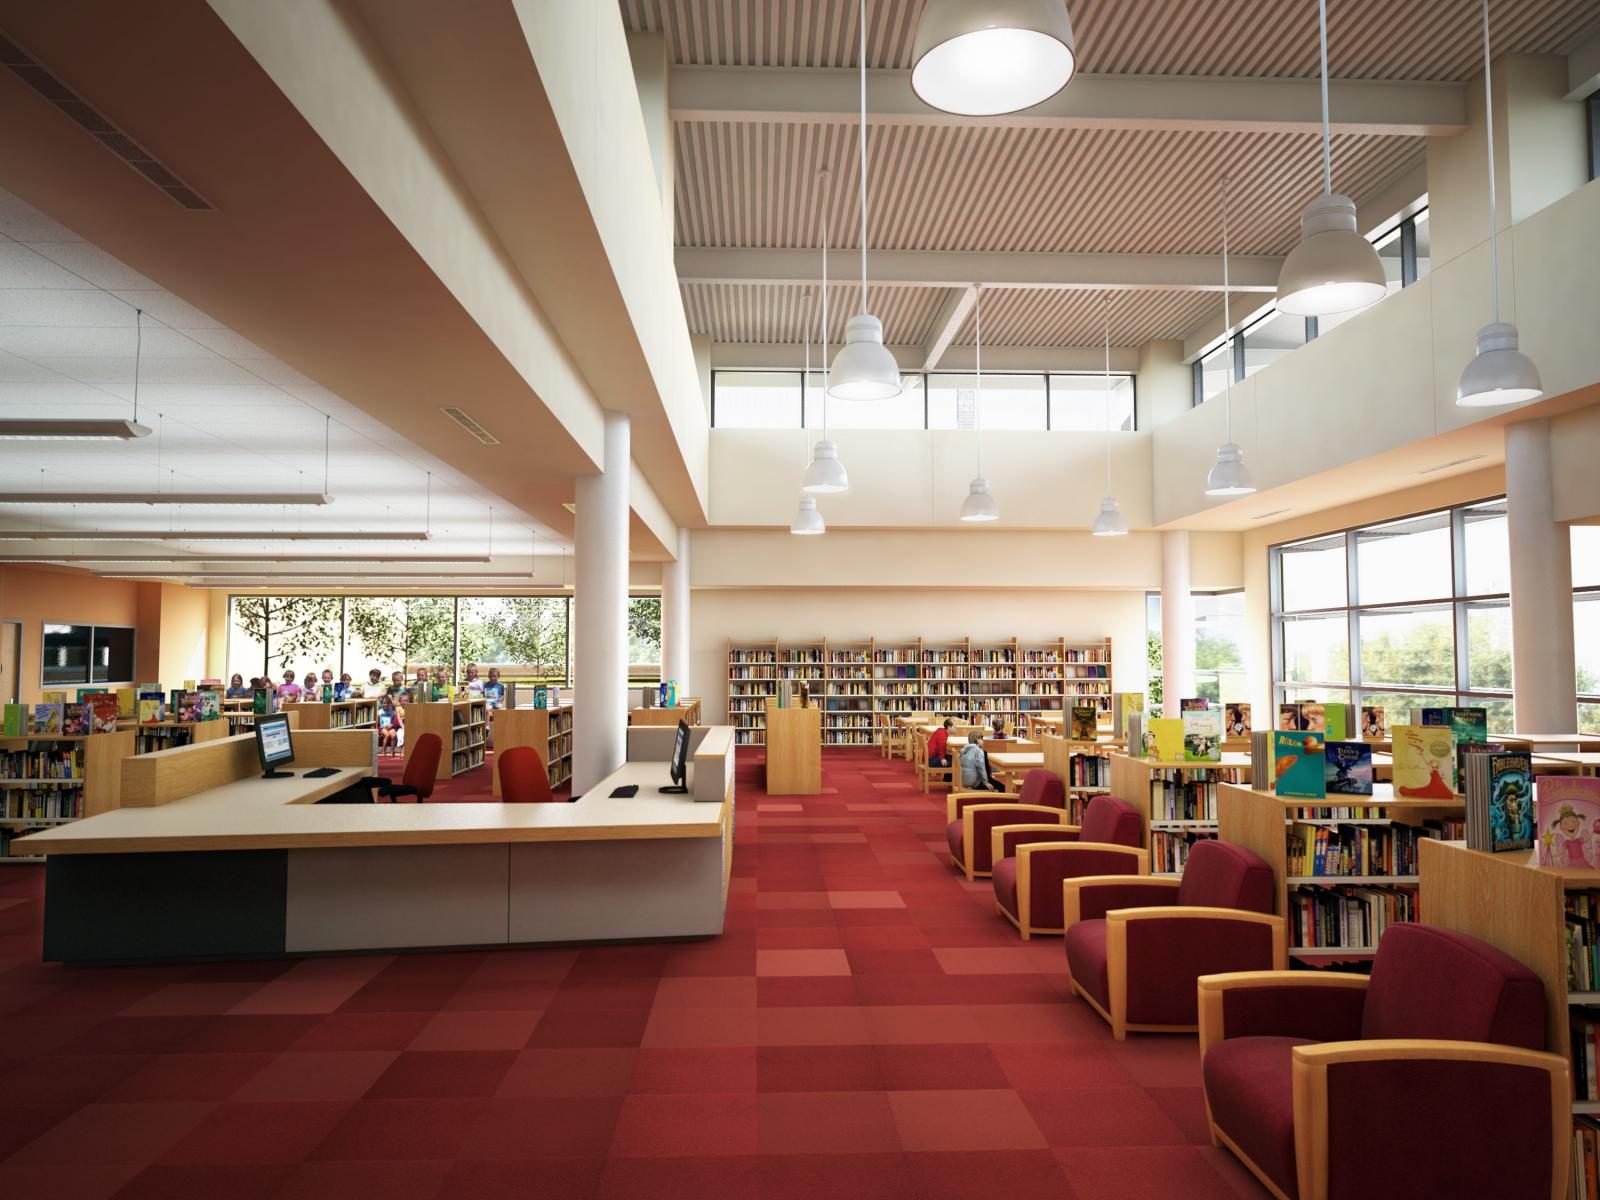 Skinner Elementary School Library with Clerestory